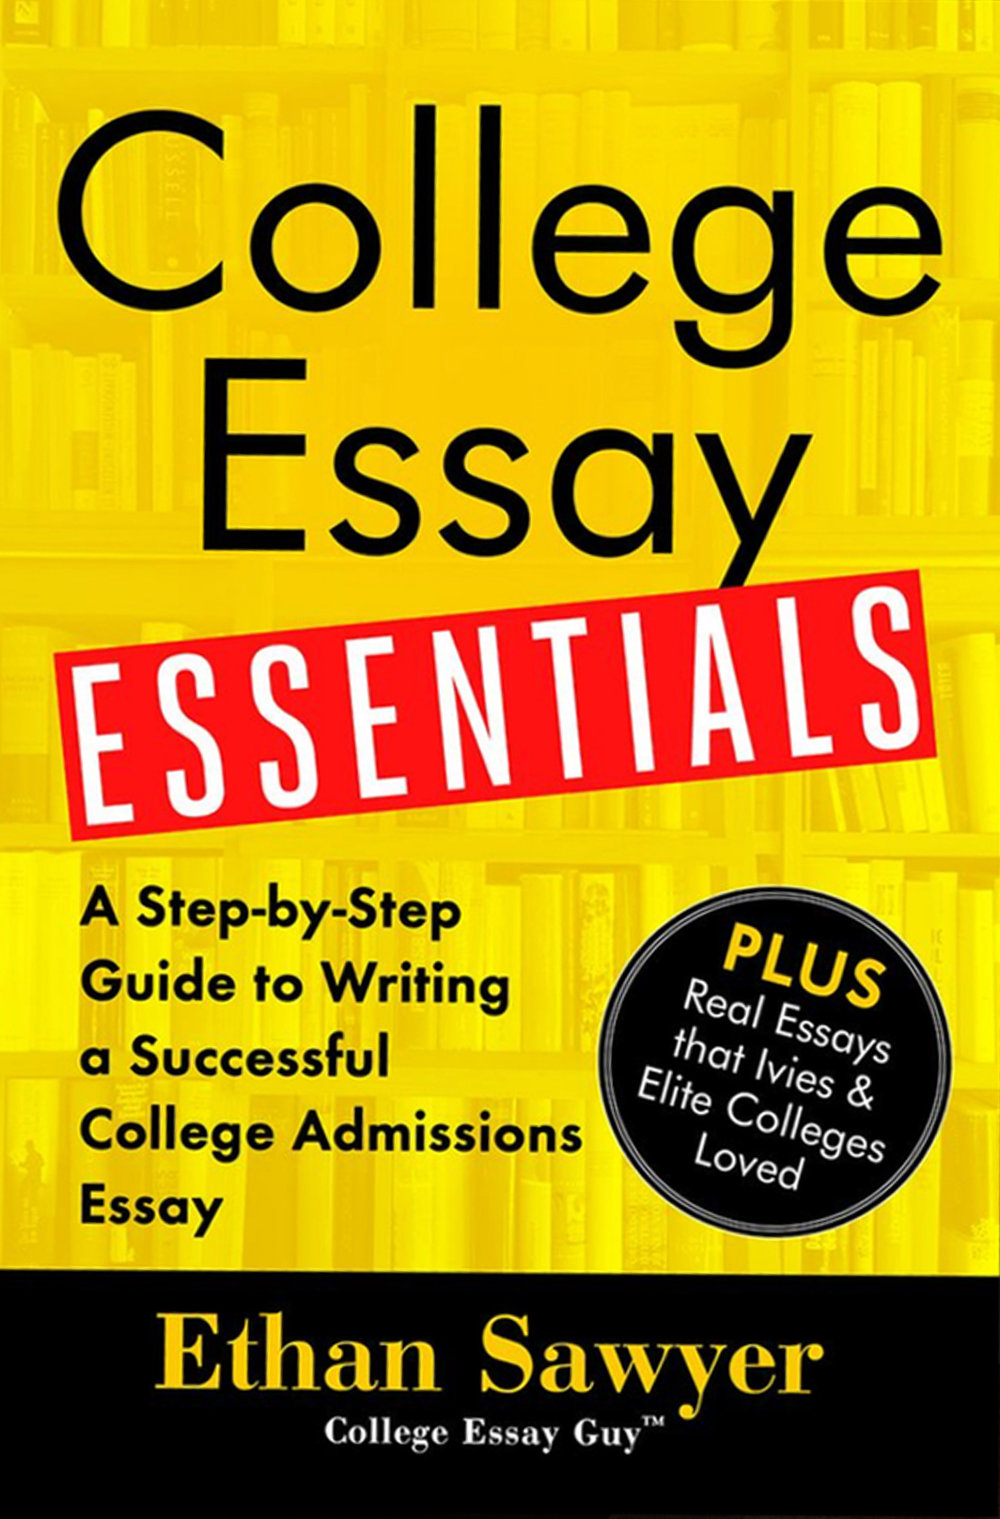 brave and interesting questions college essay guy get inspired order the new book college essay essentials